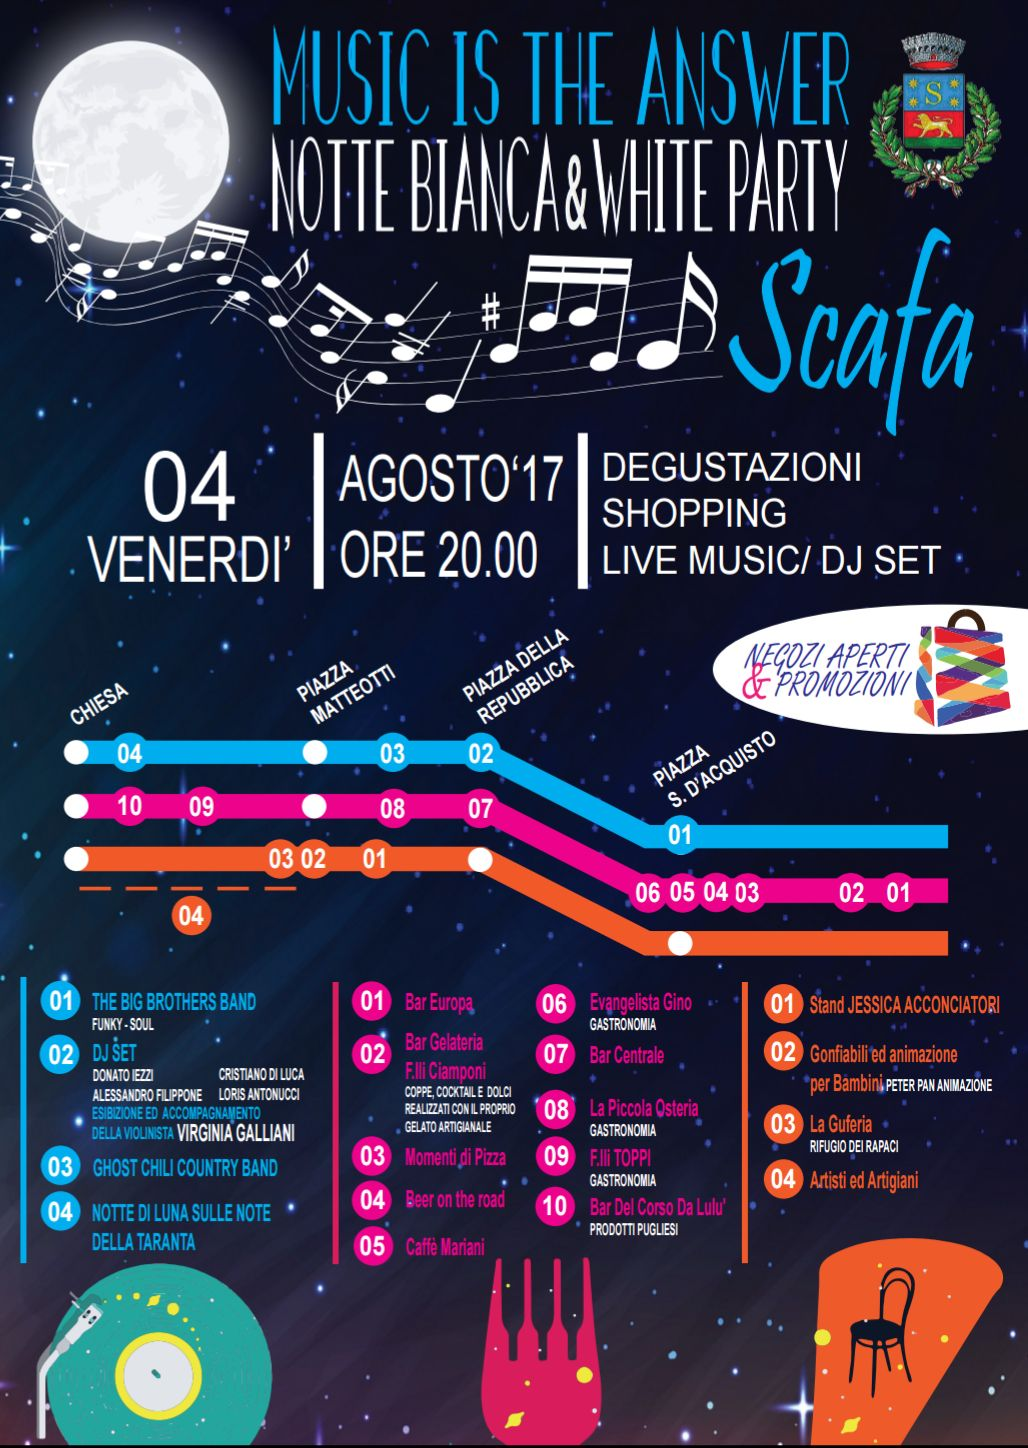 Music is the answer - notte bianca e White party a Scafa